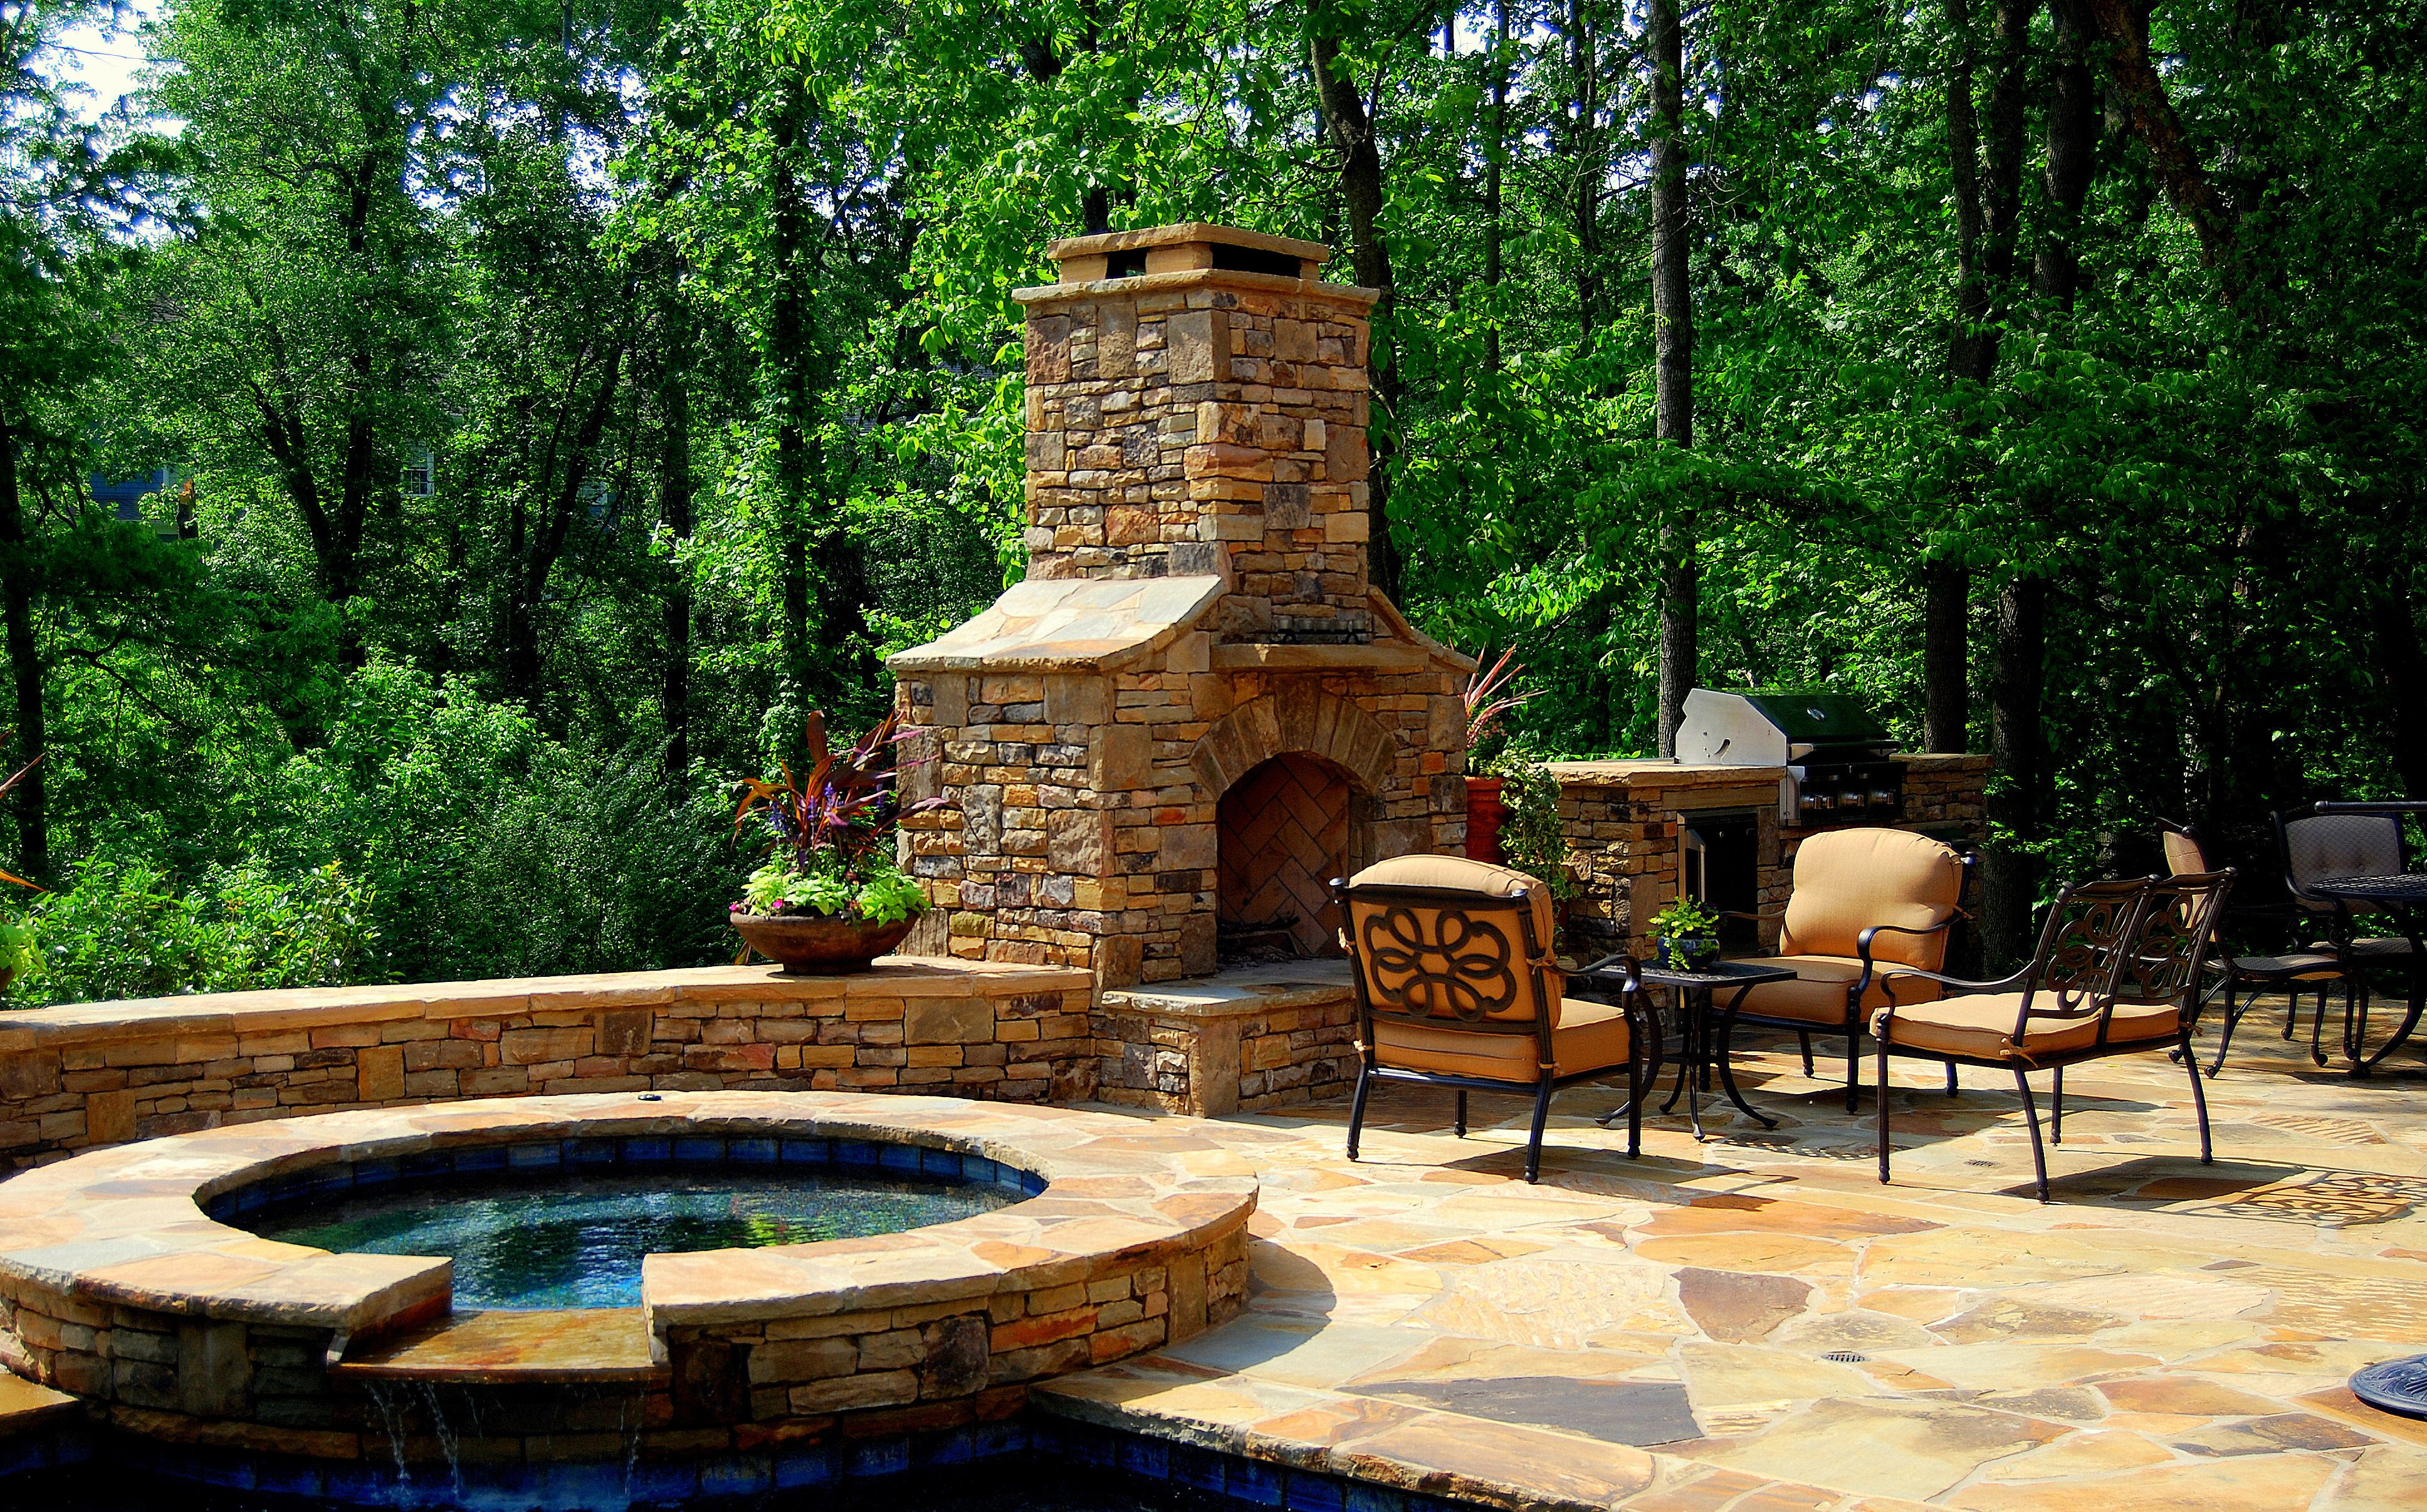 Hot Tub Outdoor Fireplace And Kitchen Love It Hot Tub